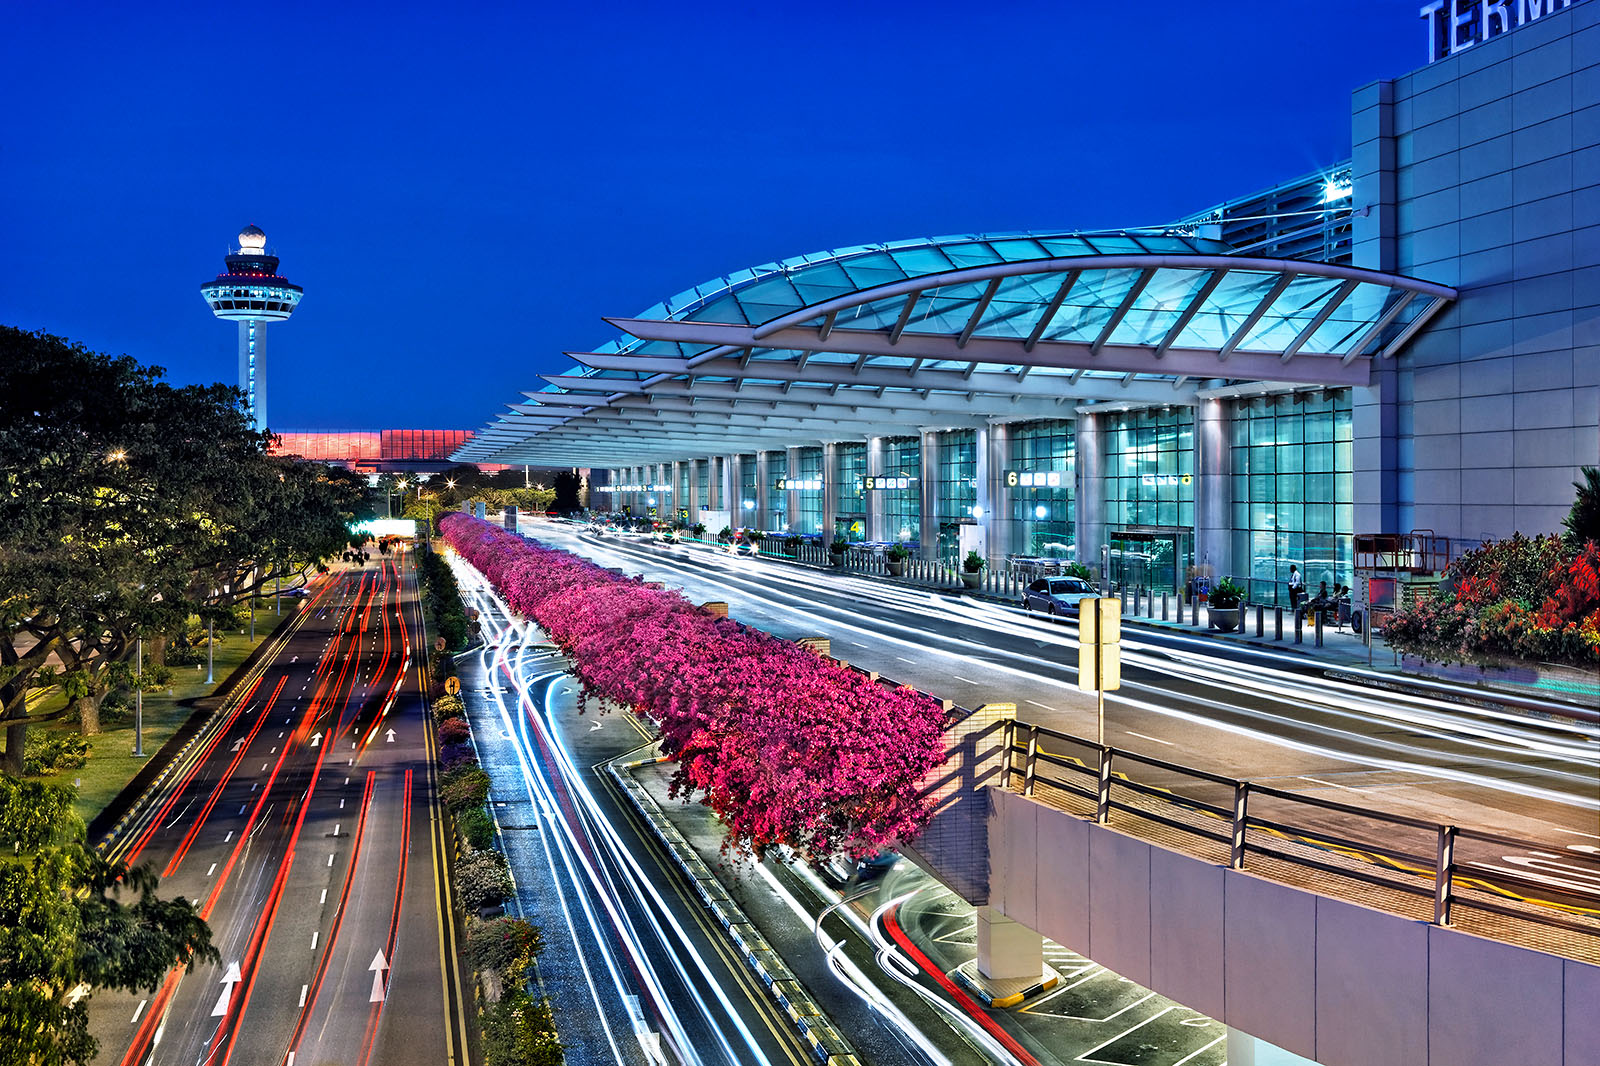 Architectural photography of Terminal 2 Singapore Changi International Airport. photo © Paul Dingman 2012. Paul Dingman is an architectural photographer based in Asia in China. He is an specialist in the photography of large scale projects including convention centers, mixed-use, and airports.